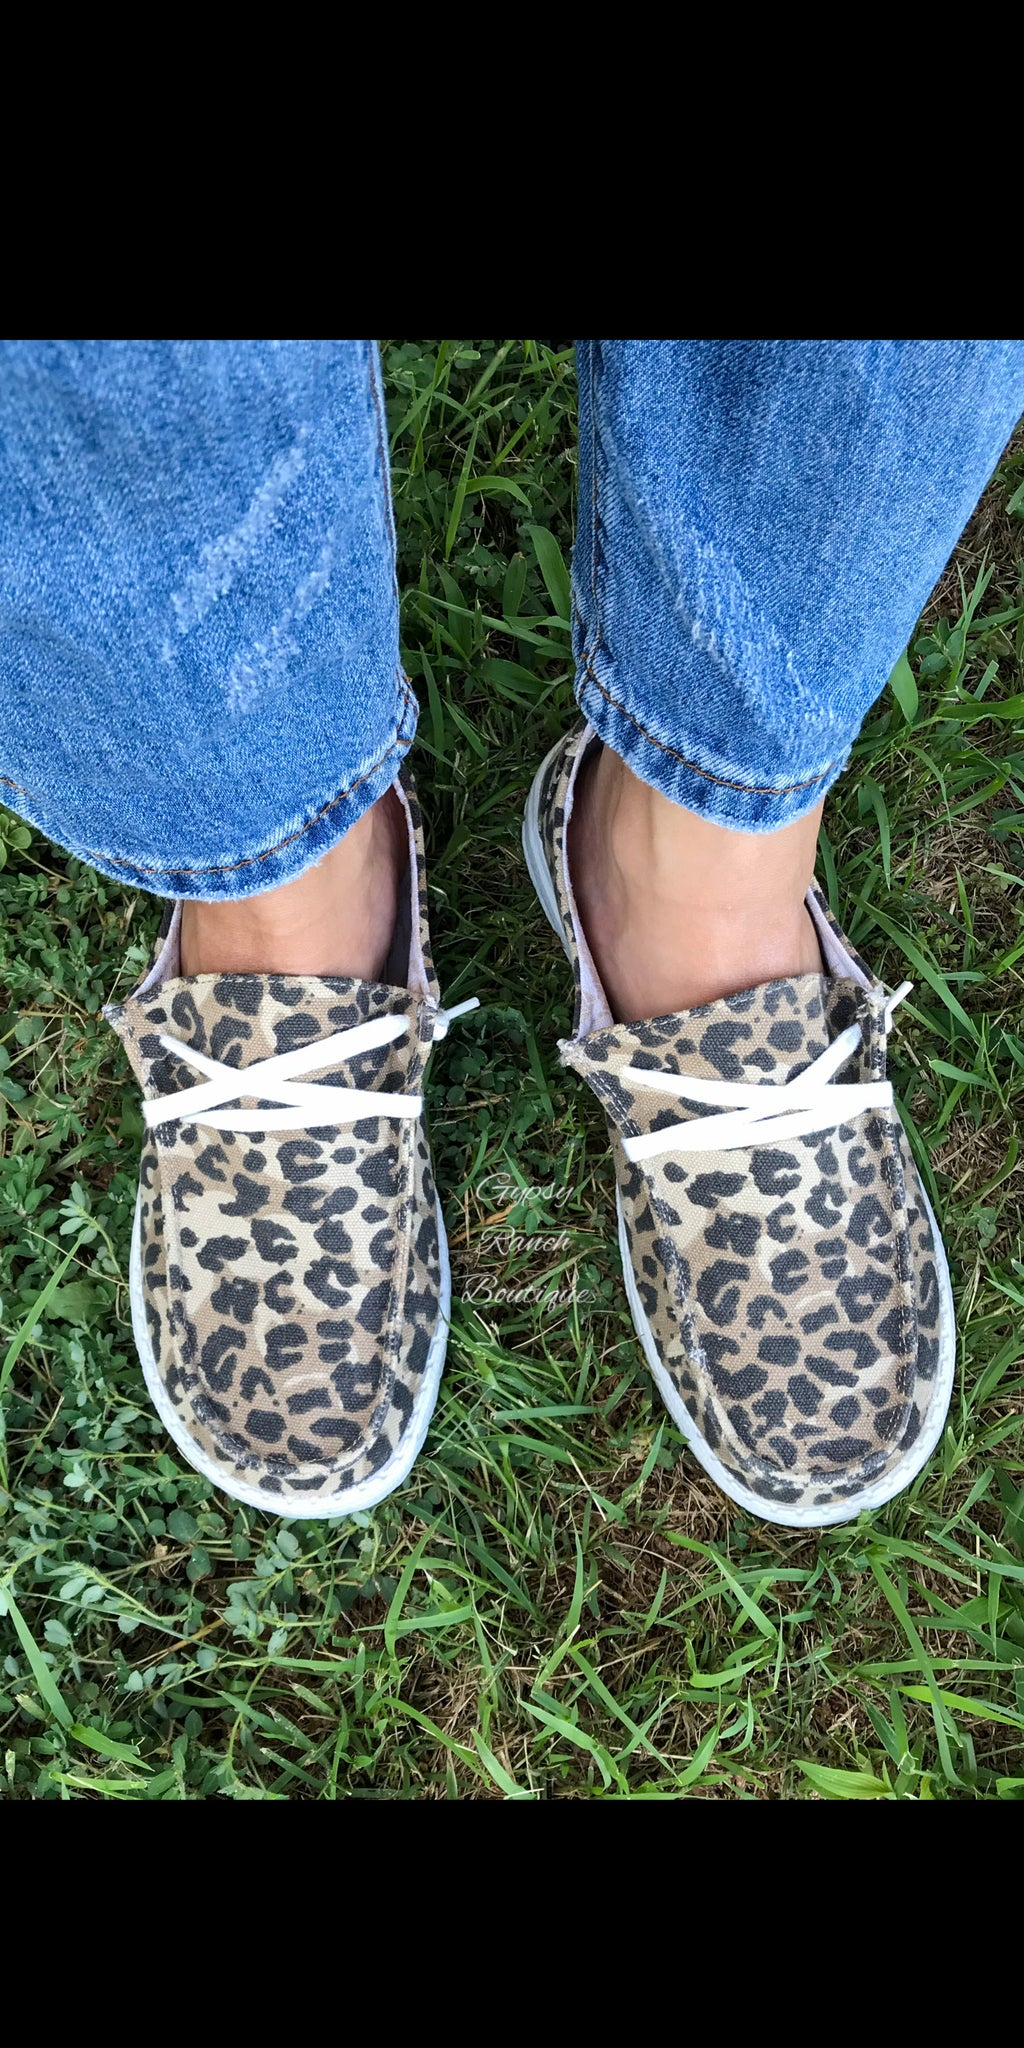 Gypsy Jazz LEOPARD Slip On Shoes